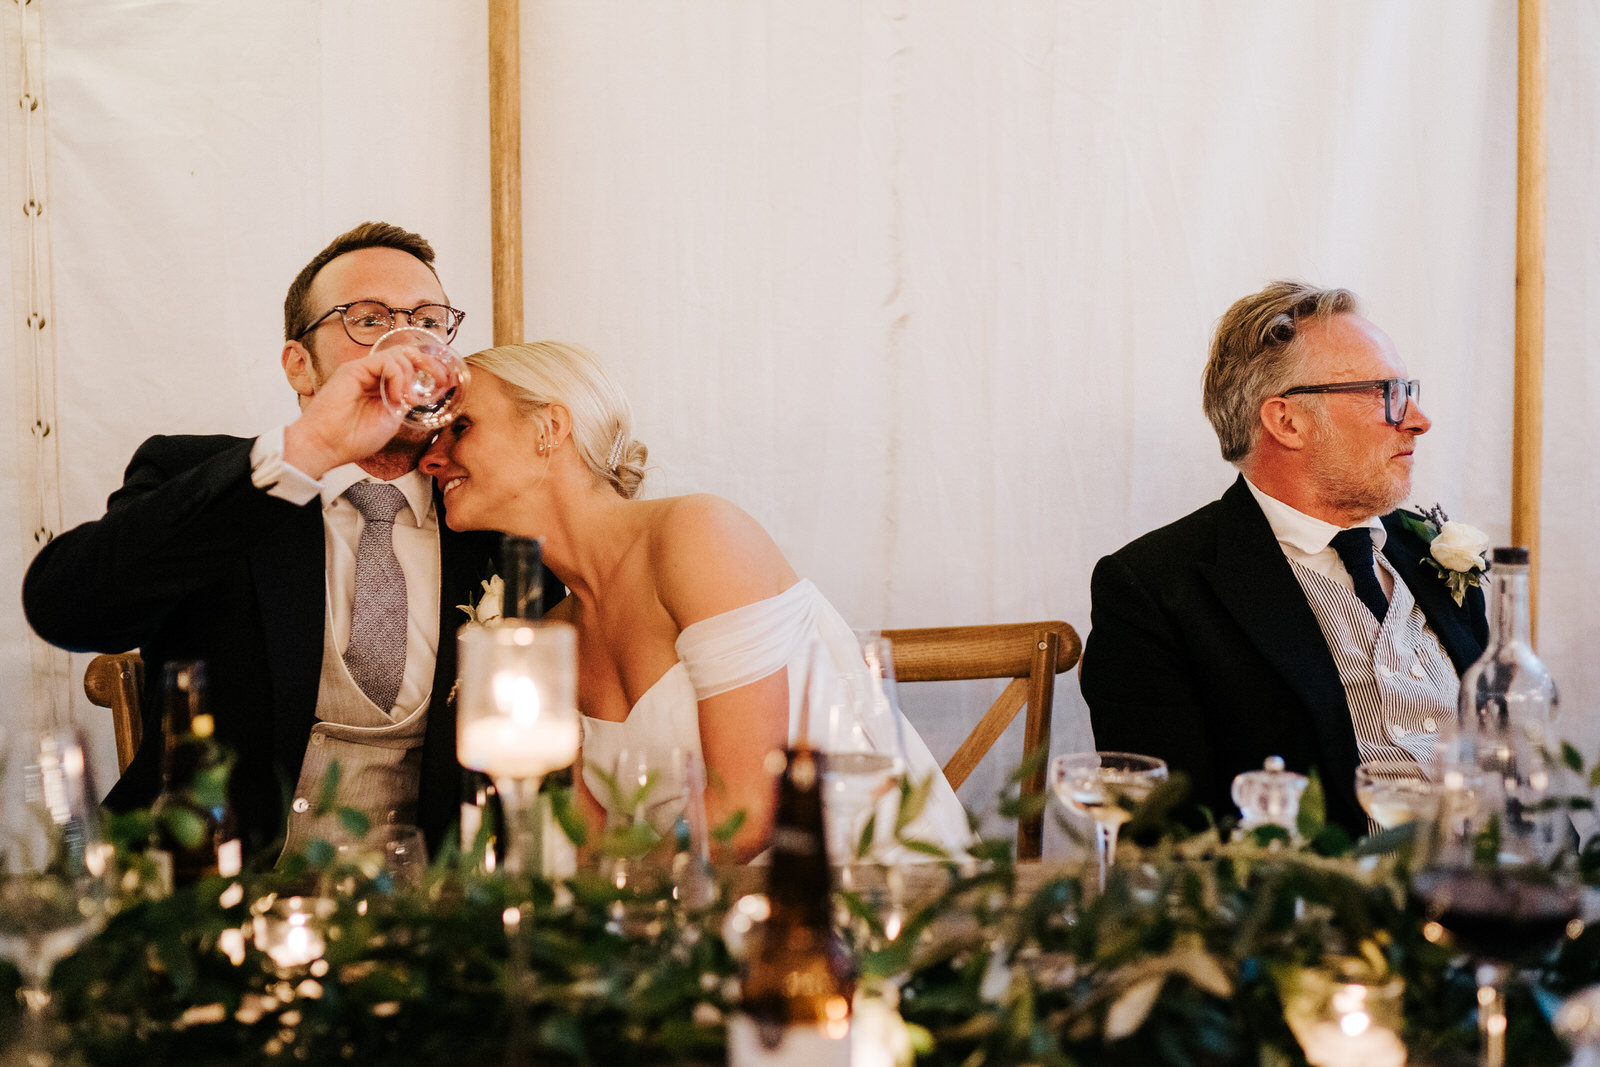 Bride embraces groom, as he takes a drink of wine, after he has completed his speech